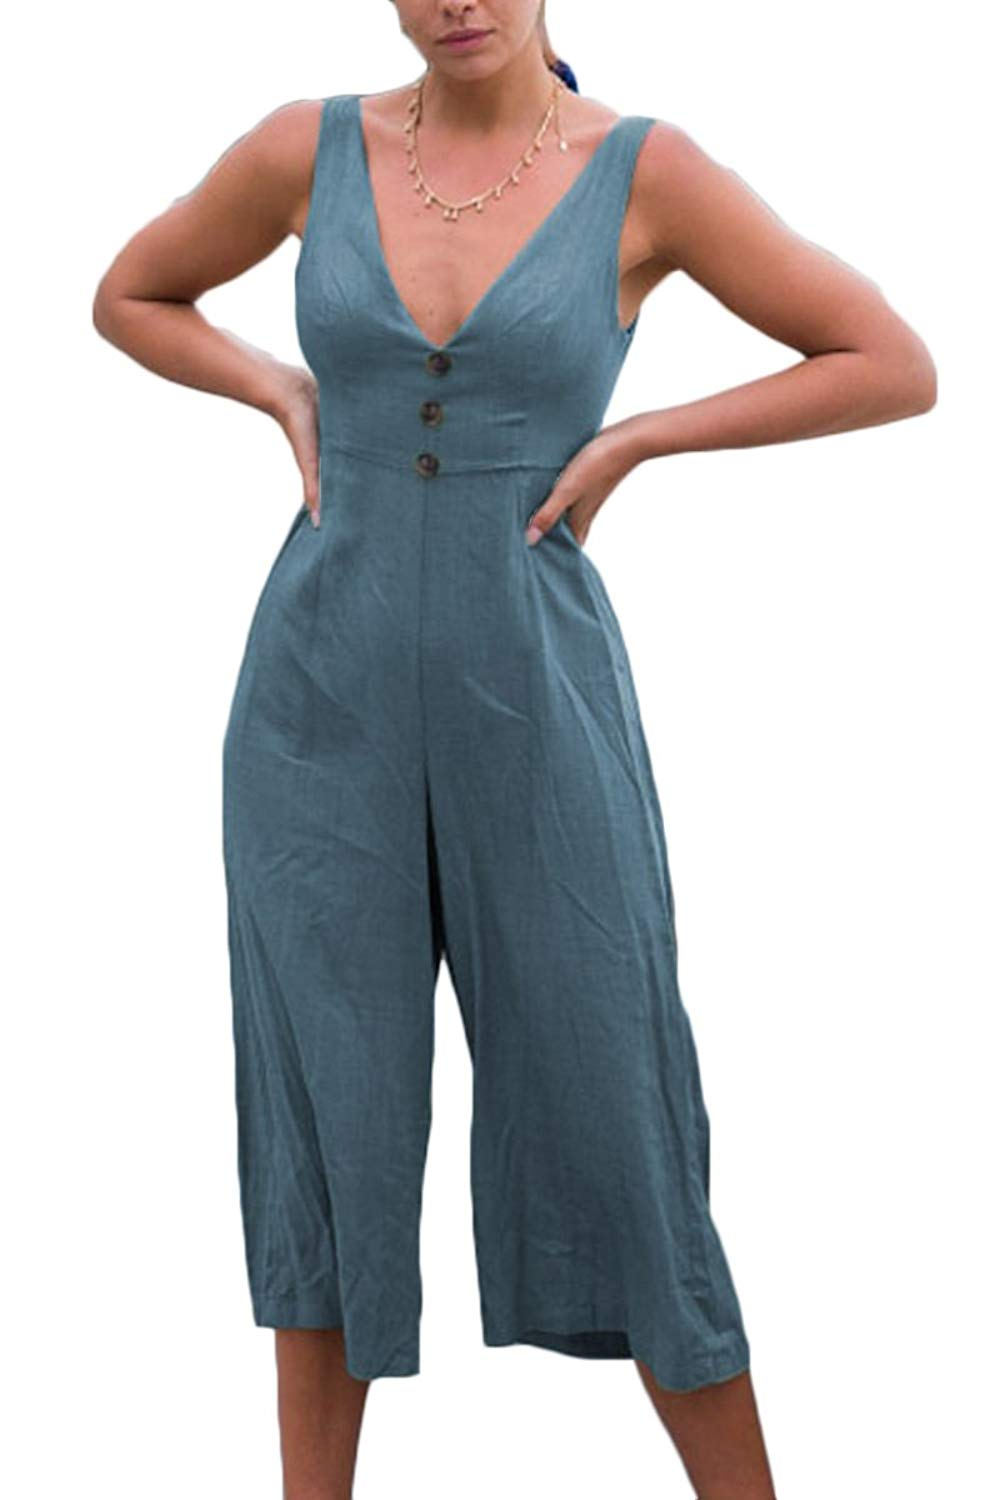 6d8c60bee8d Get Quotations · Haloon Womens Tie Knot Back Plunge V Neck Tank Sleeve  Button Jumpsuit Rompers